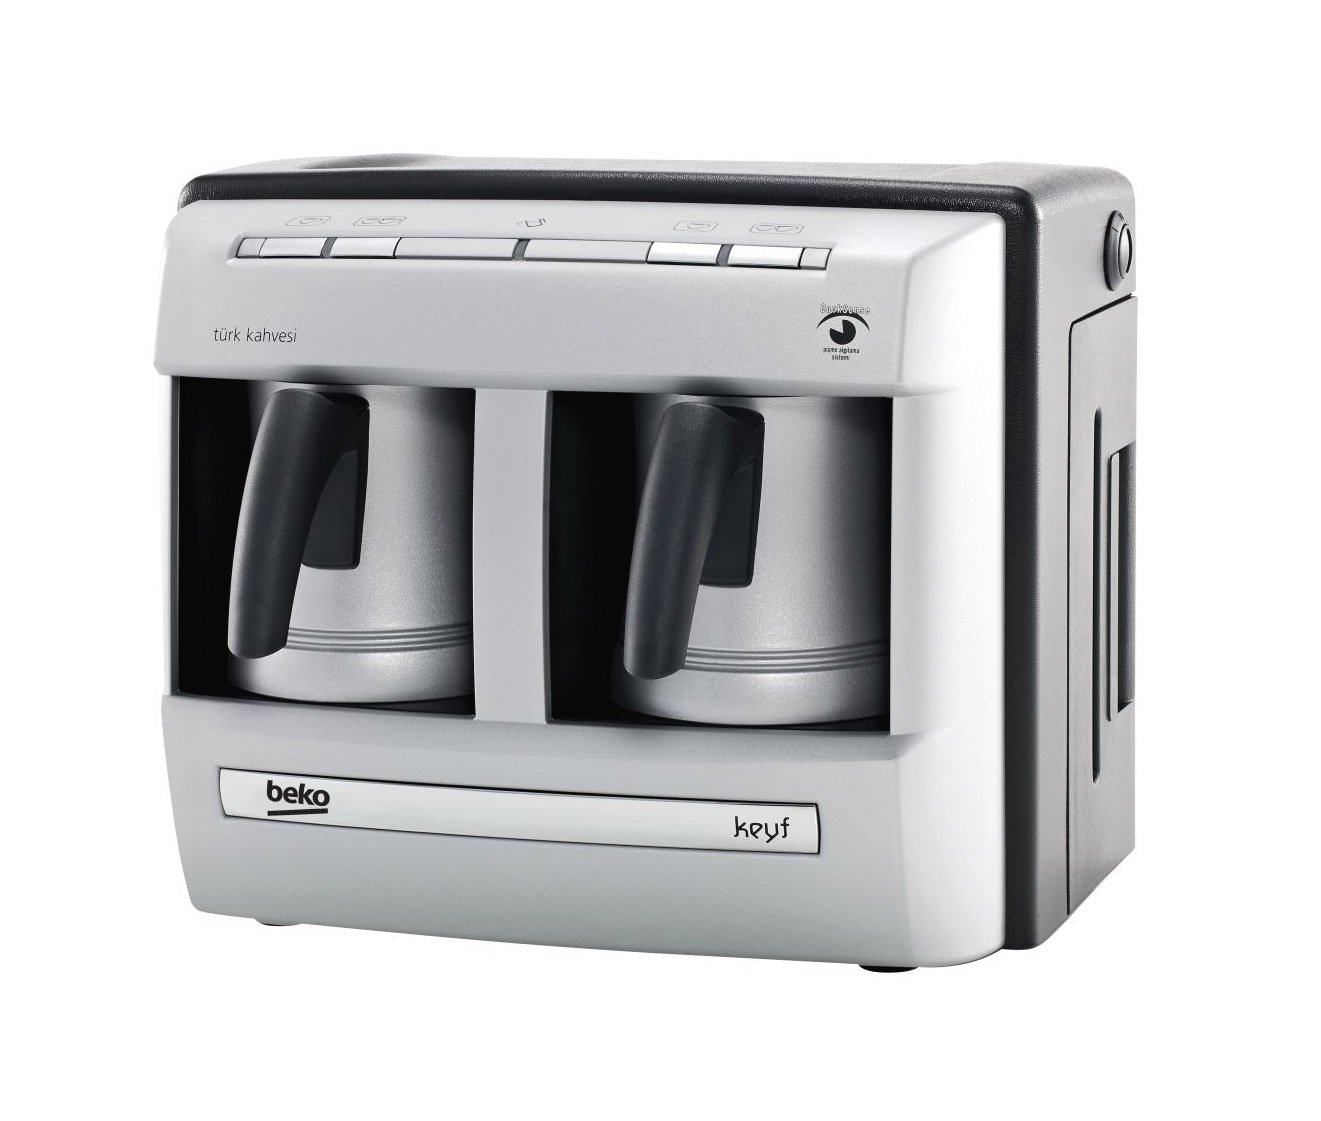 BEKO BKK 2113P DUAL ZONE 2 POTS AUTOMATIC ARABIC / GREECE / TURKISH COFFEE ESPRESSO MAKER MACHINE 220V 1470W